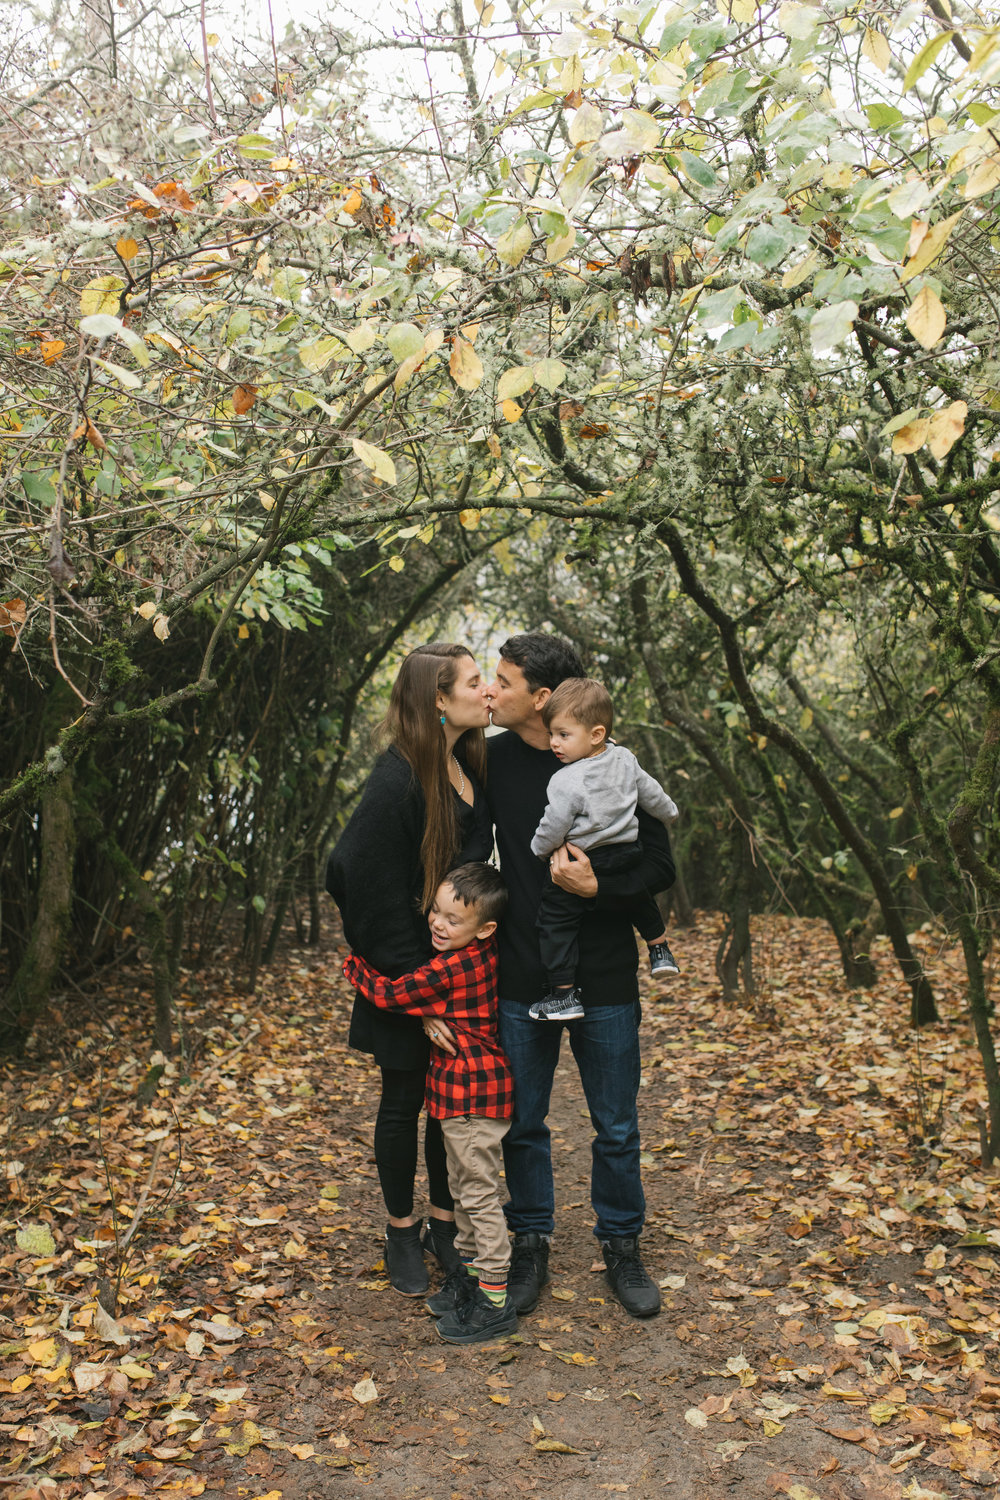 Leaf Throwing sweet Seattle Discovery Park Family Photo Session during golden hour by Chelsea Macor Photography-2.jpg